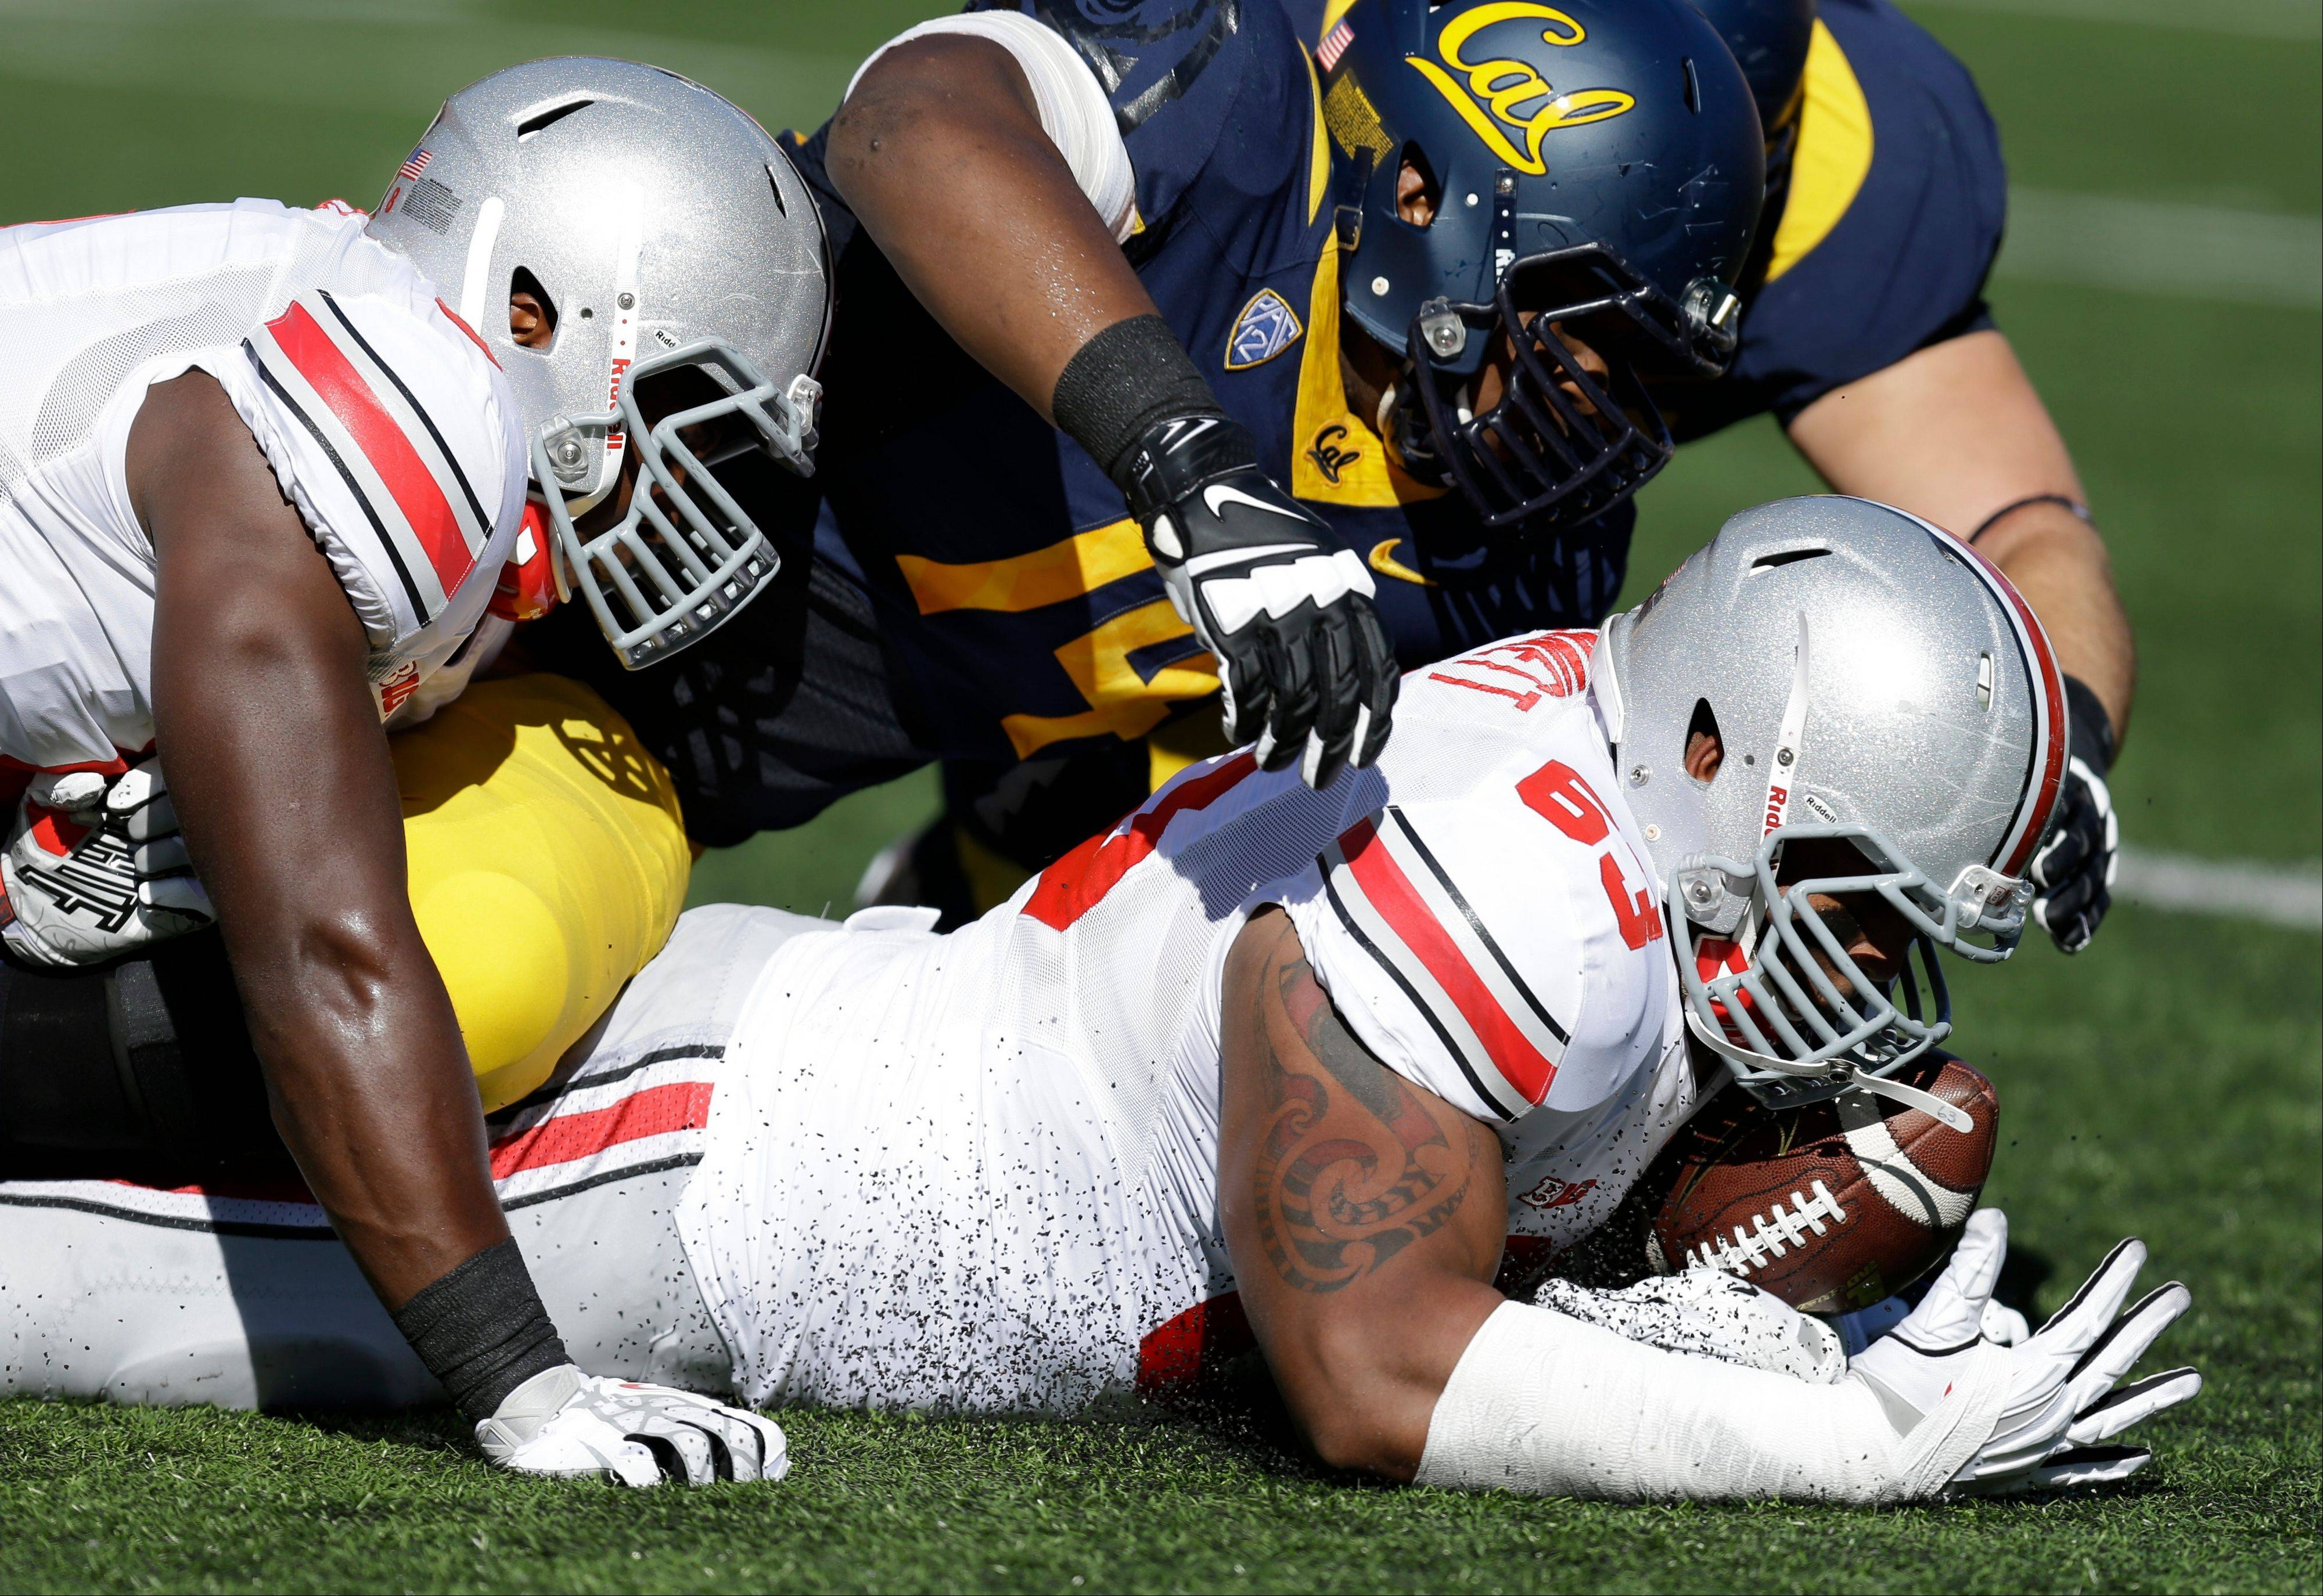 Buckeyes not perfect on defense but still 3-0